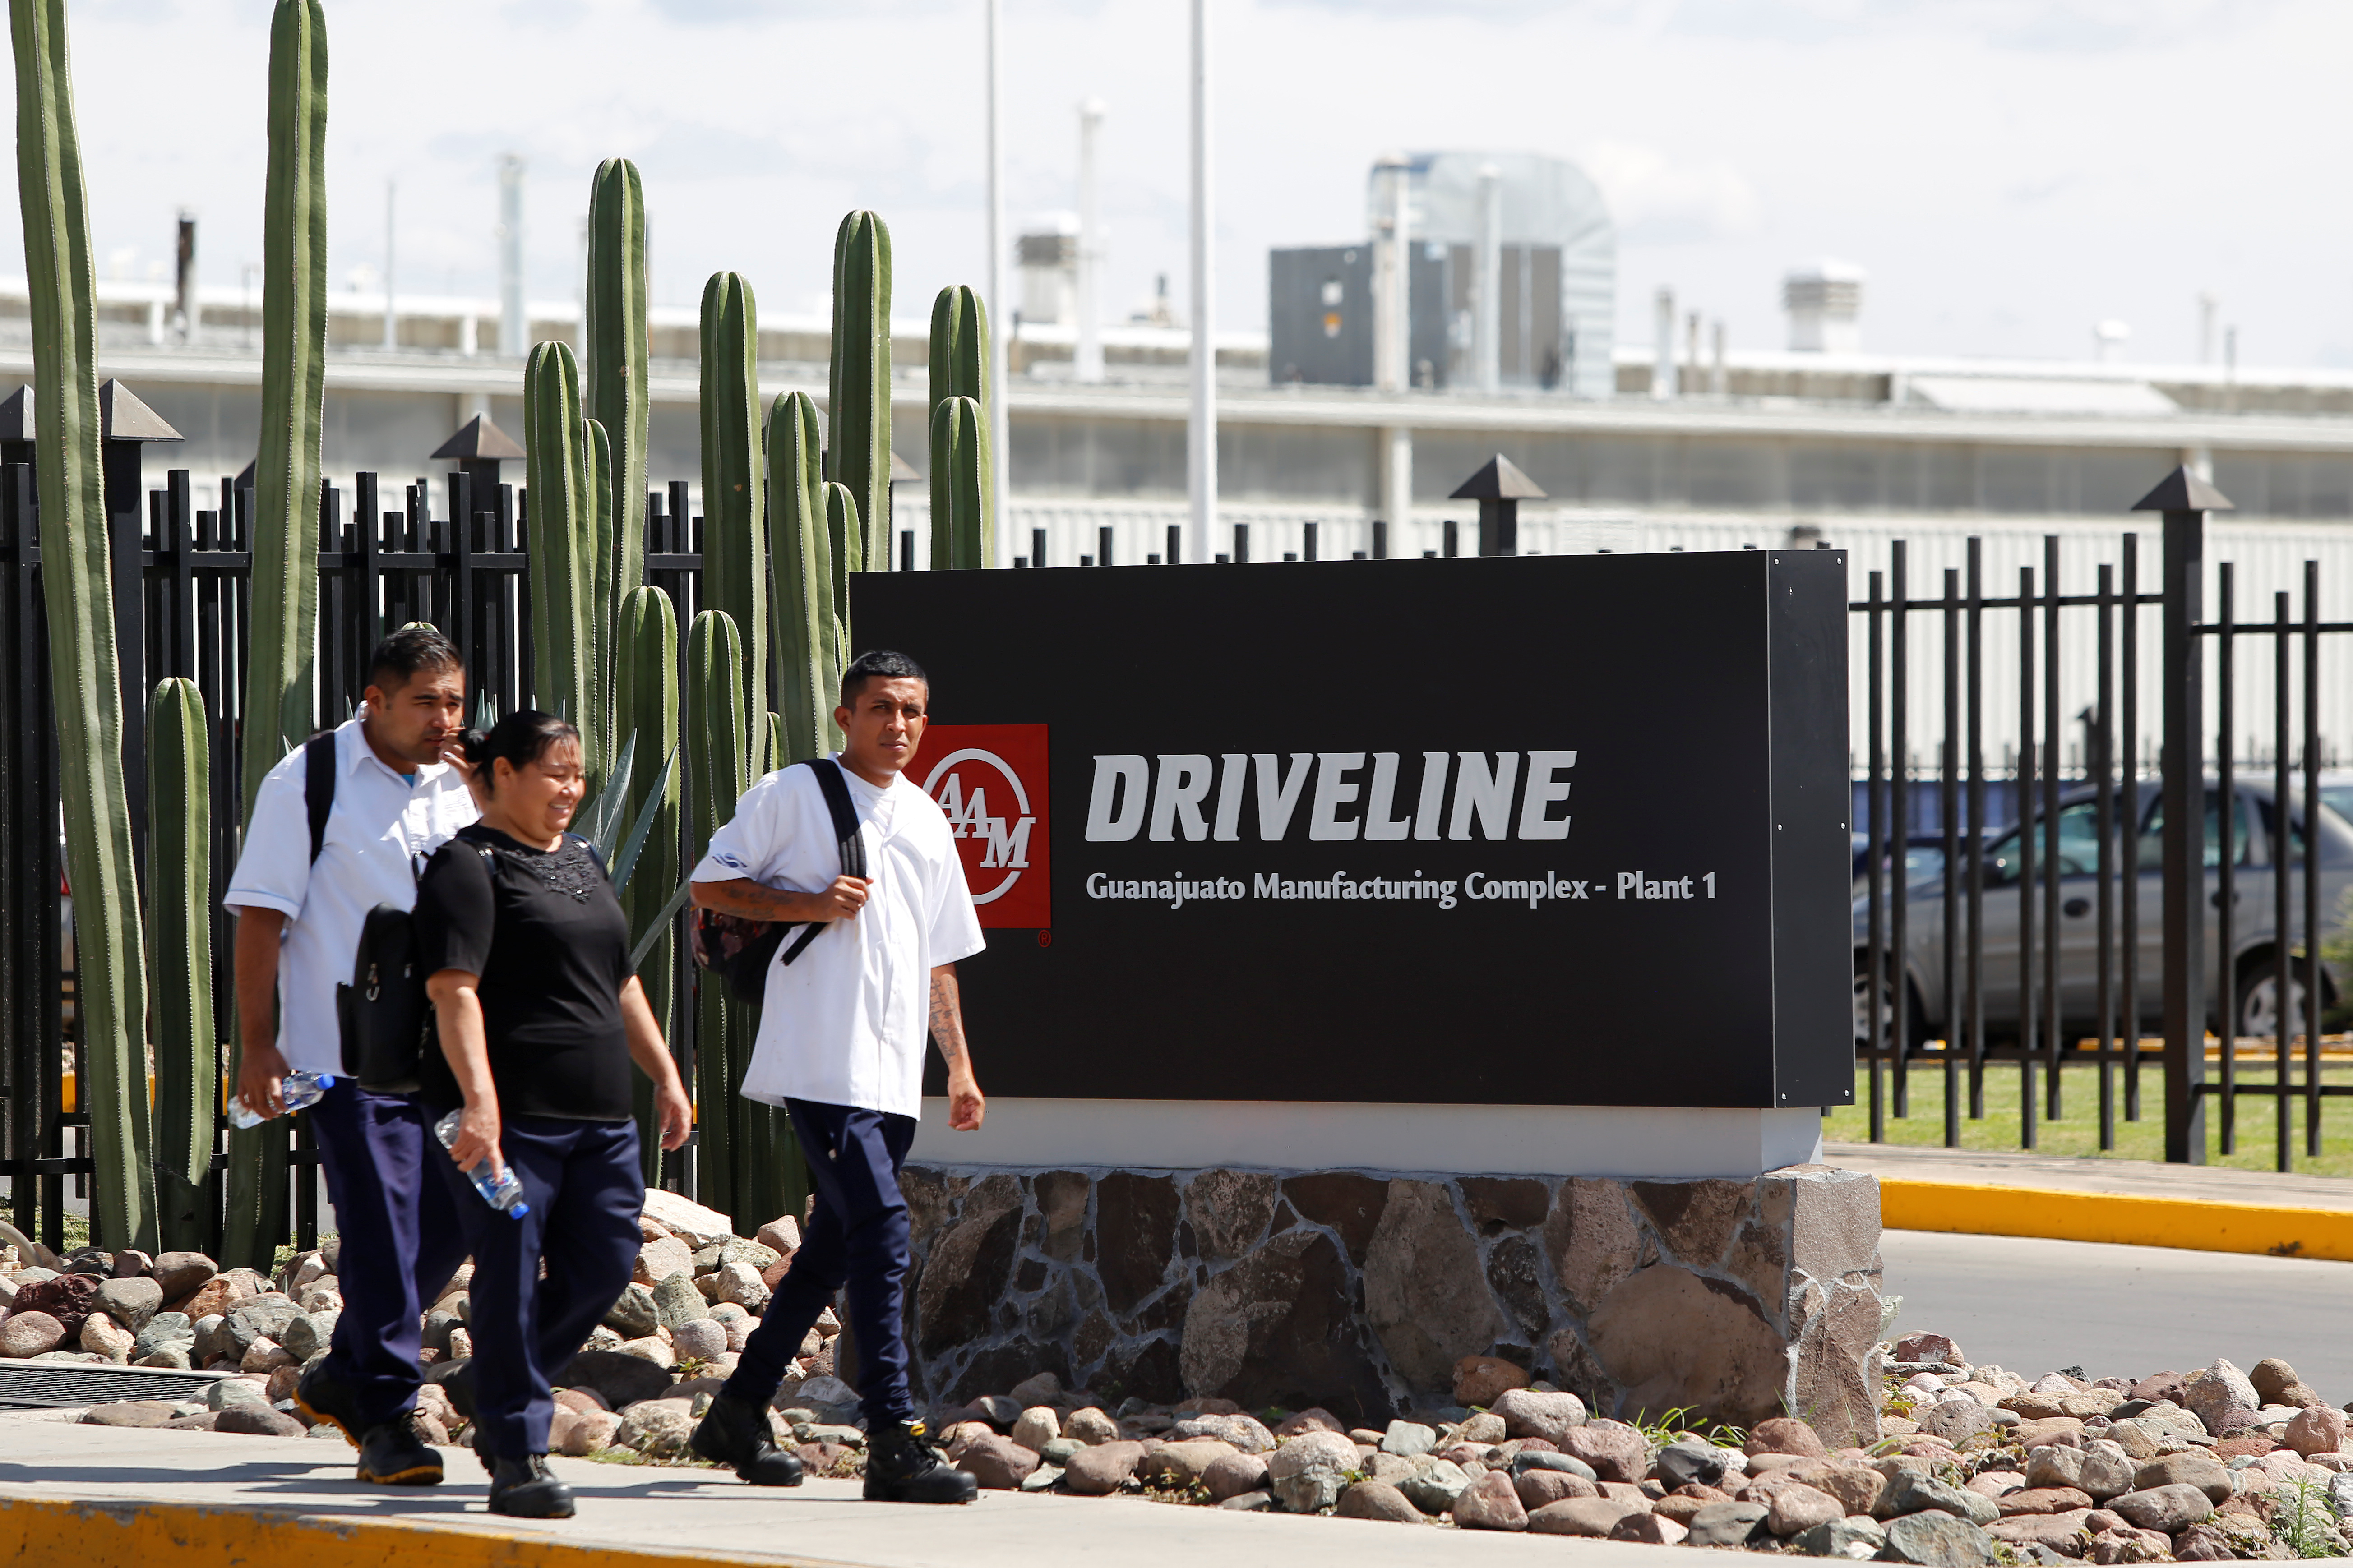 Employees leave American Axle & Manufacturing (AAM) plant, an automotive supplier to GM, in Silao, Mexico October 9, 2019. REUTERS/Sergio Maldonado